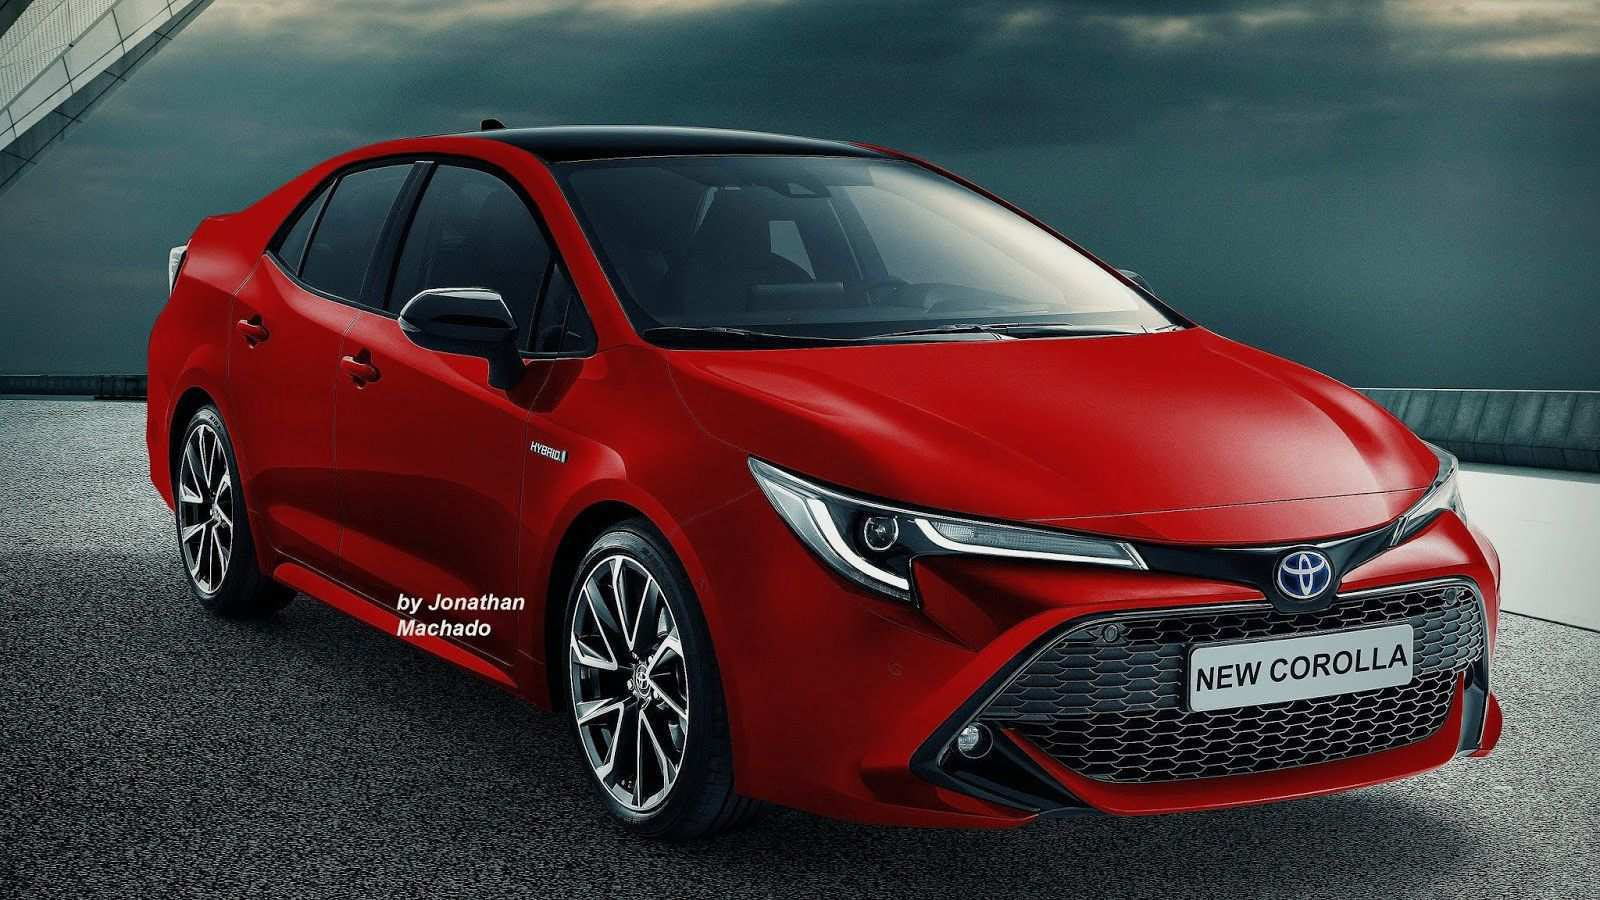 56 Concept of The New Toyota 2019 Models Review Specs And Release Date Price by The New Toyota 2019 Models Review Specs And Release Date